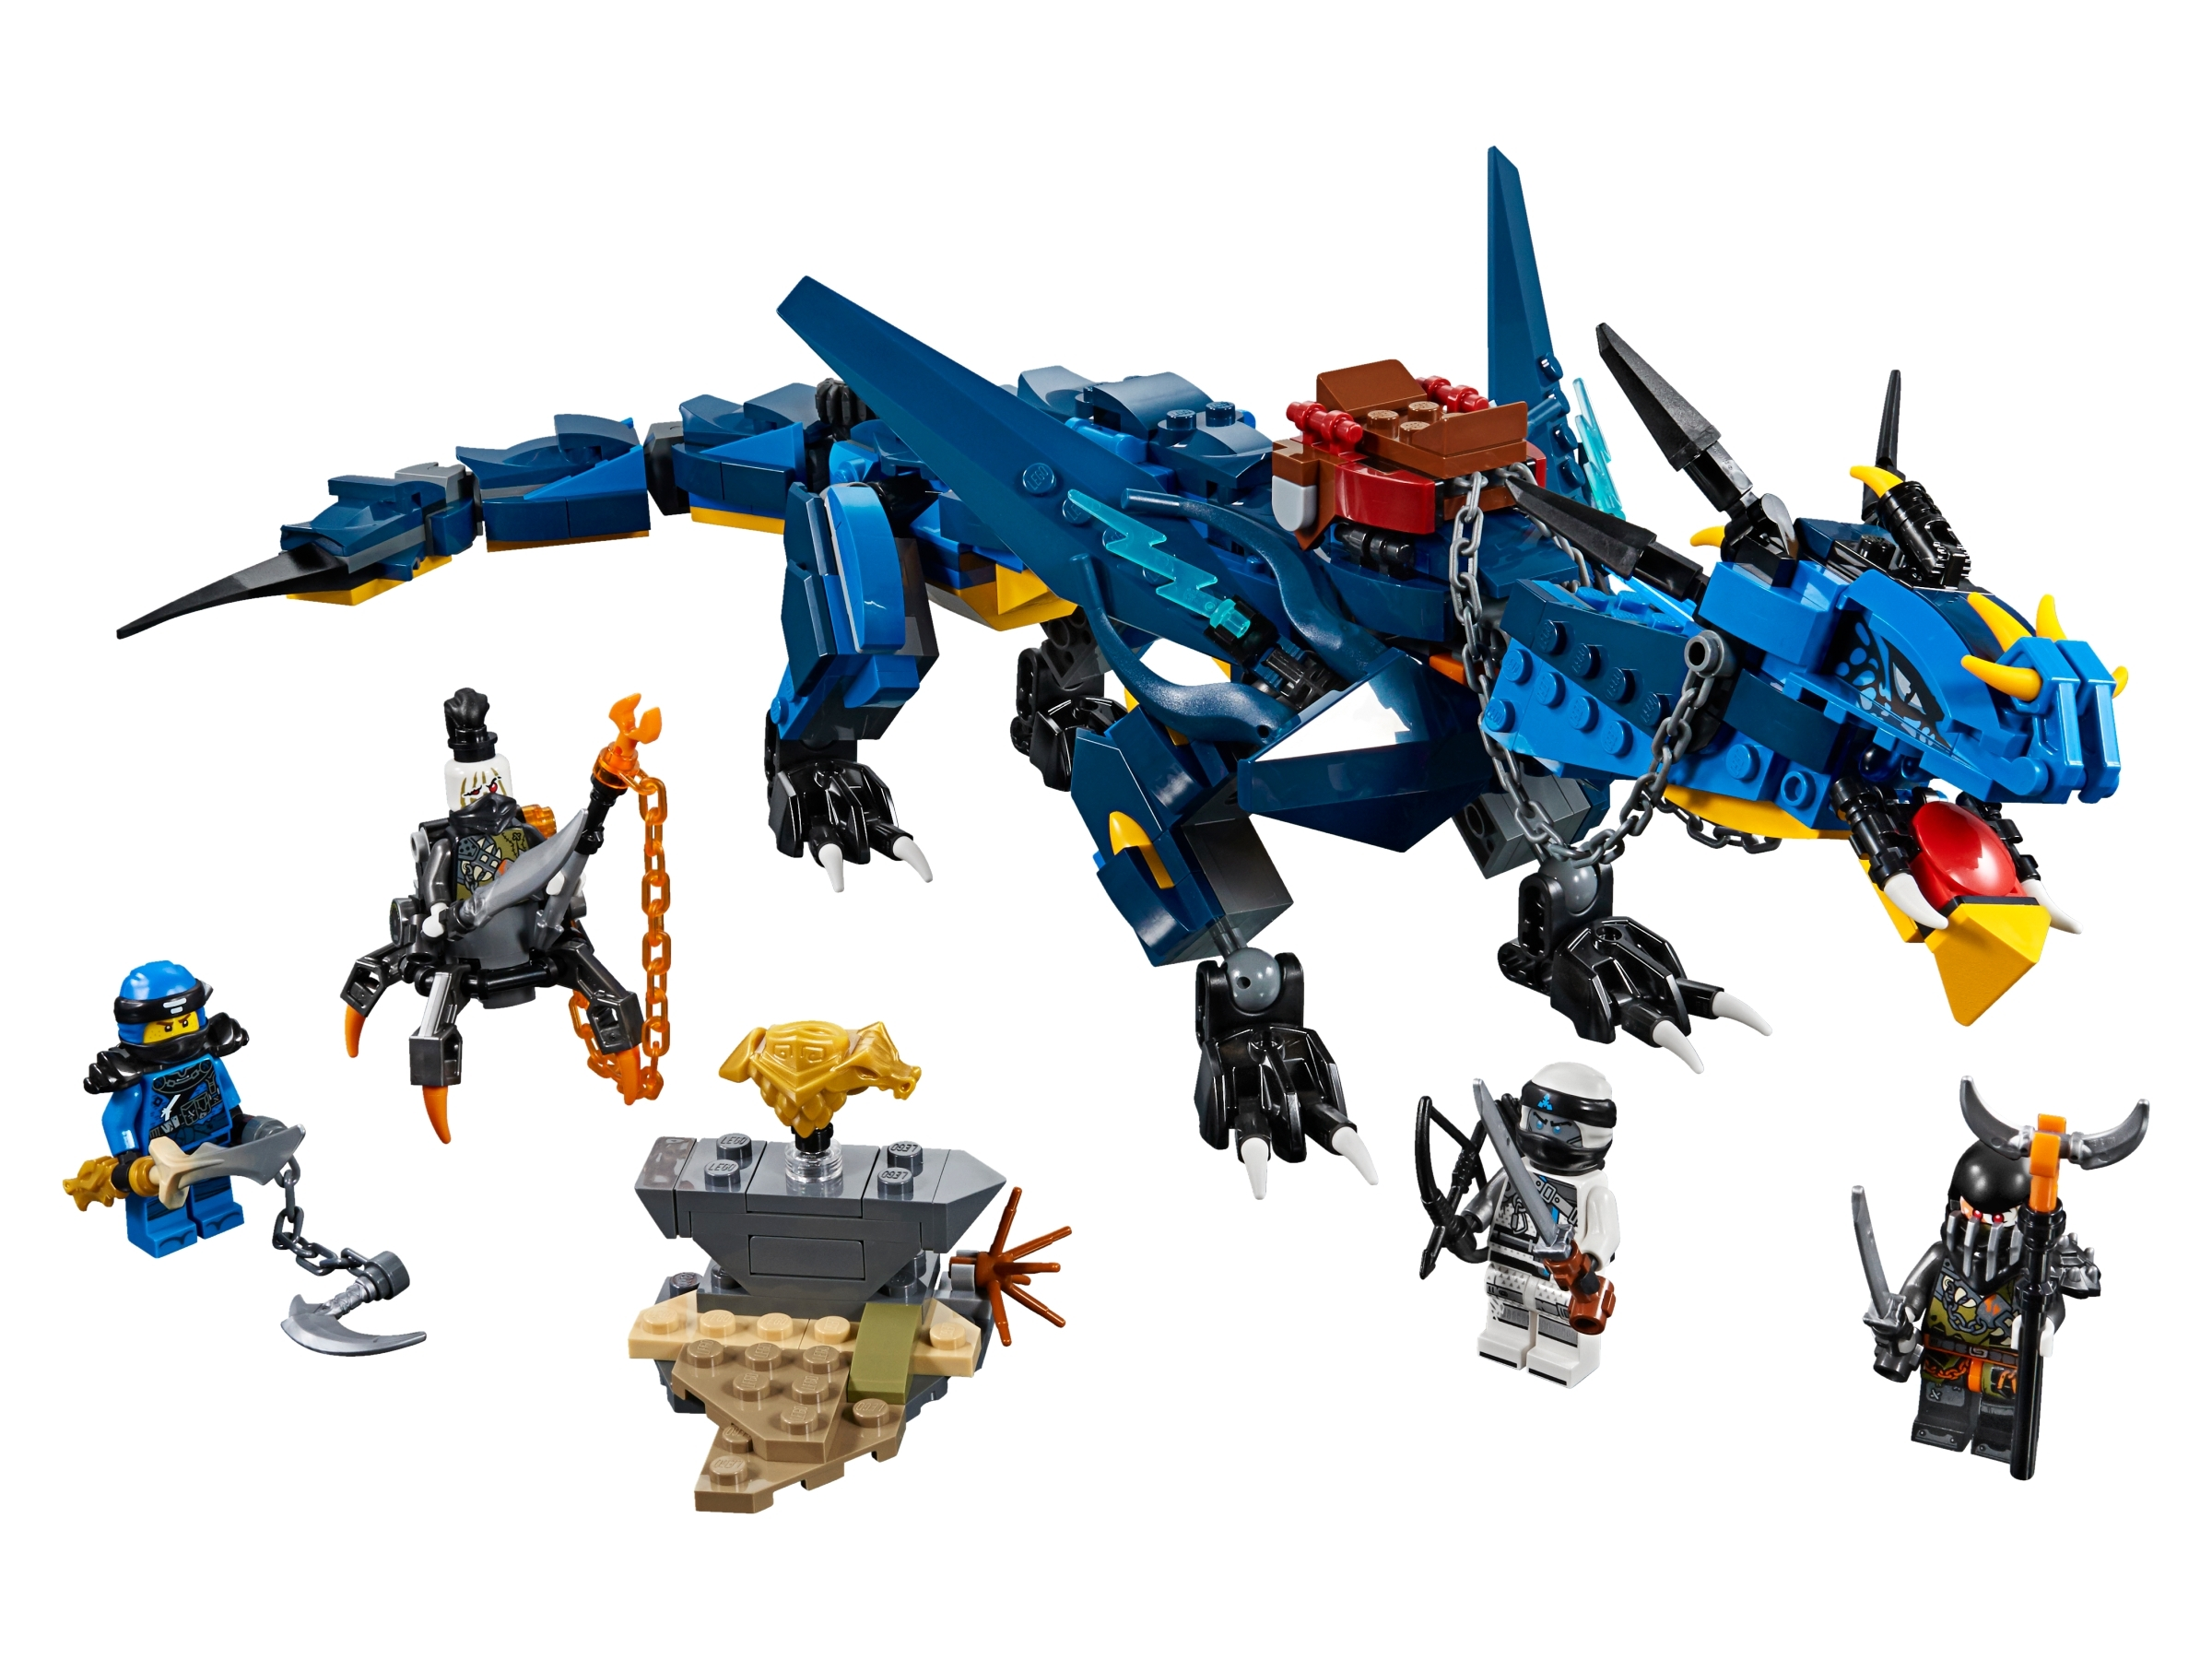 Stormbringer 70652 Ninjago Buy Online At The Official Lego Shop Us So, i got the idea from that to put it on the lightning dragon as well. stormbringer